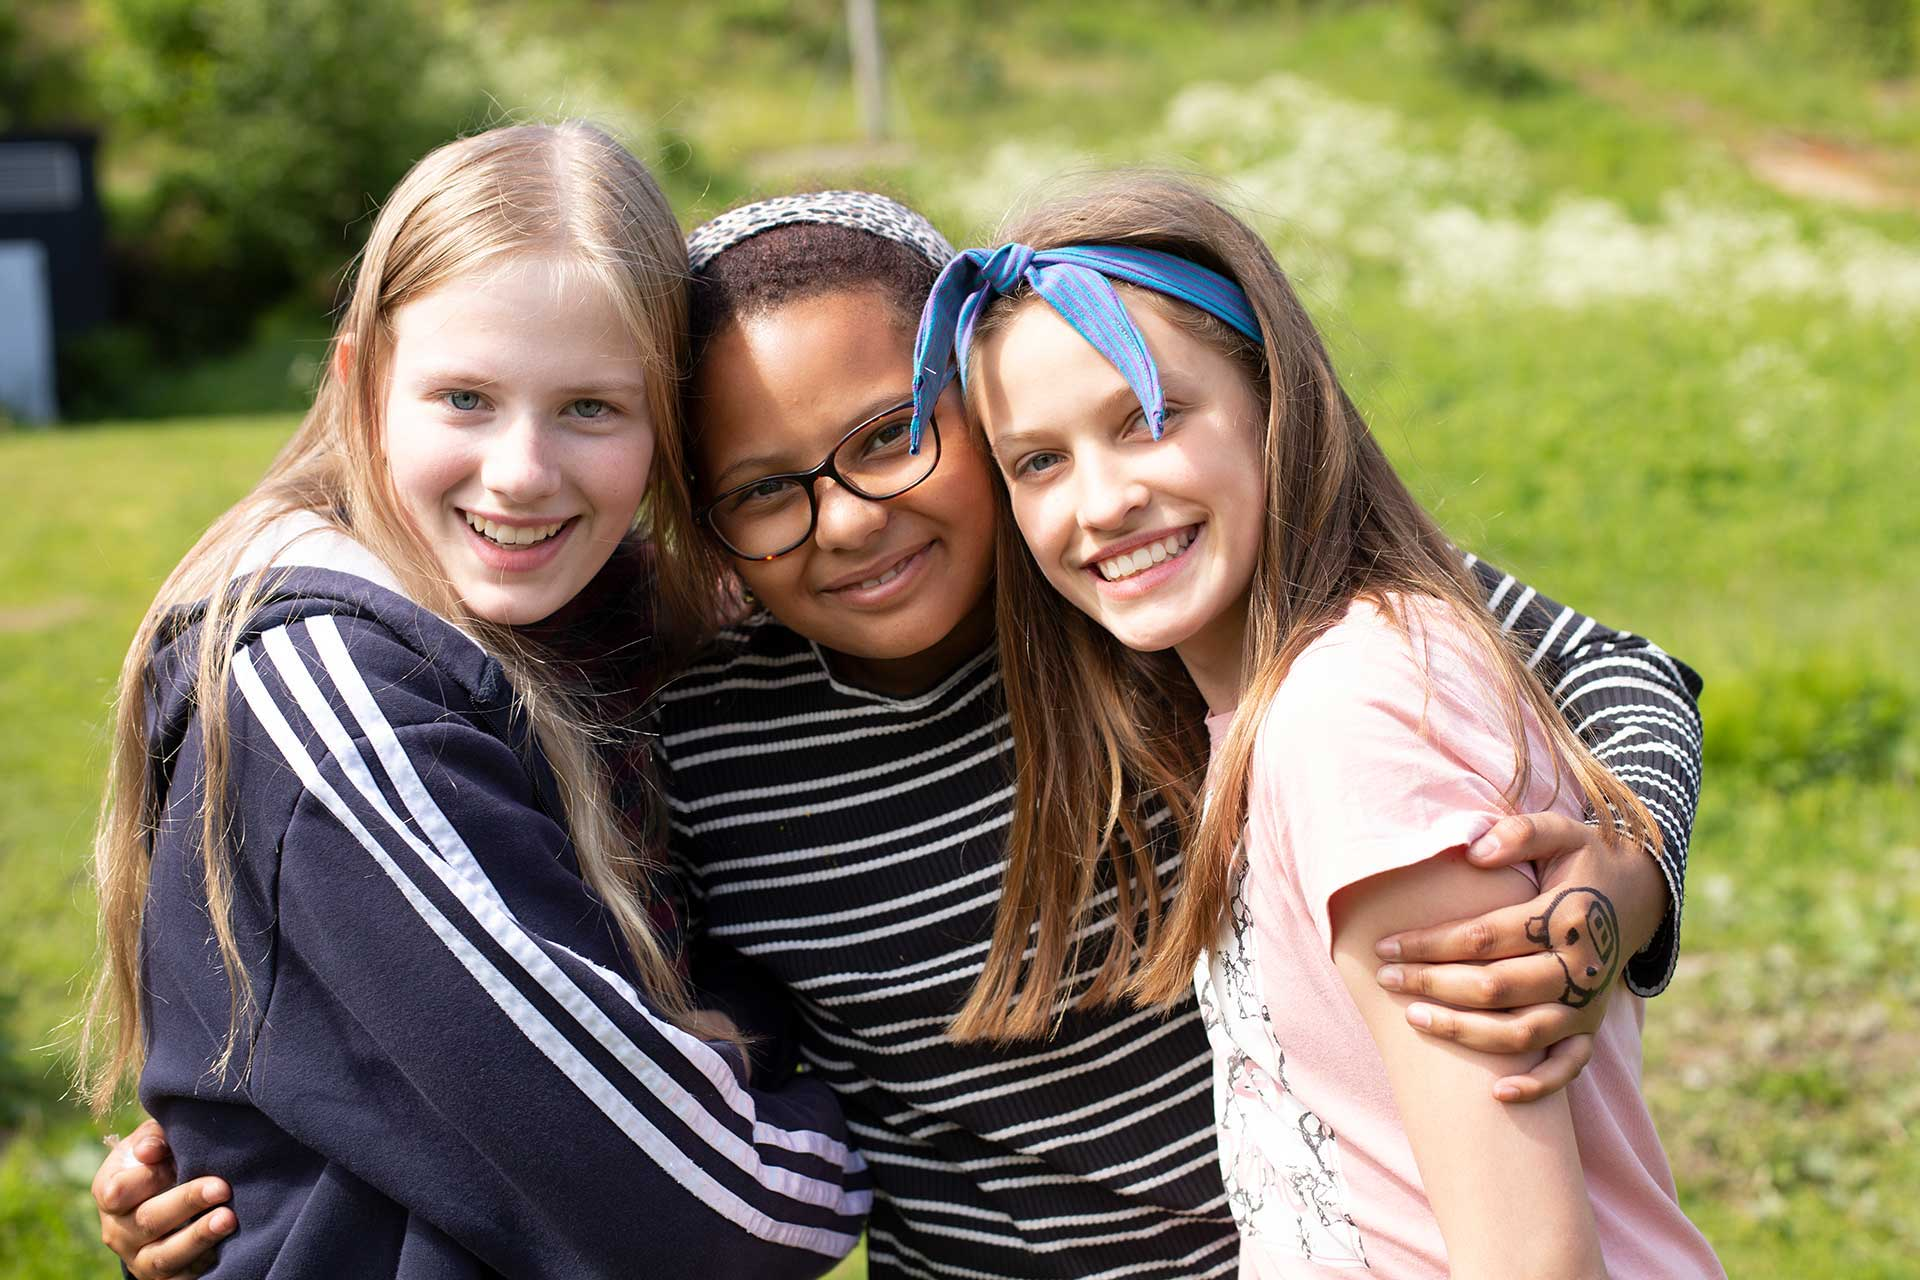 Students at Arendal International School